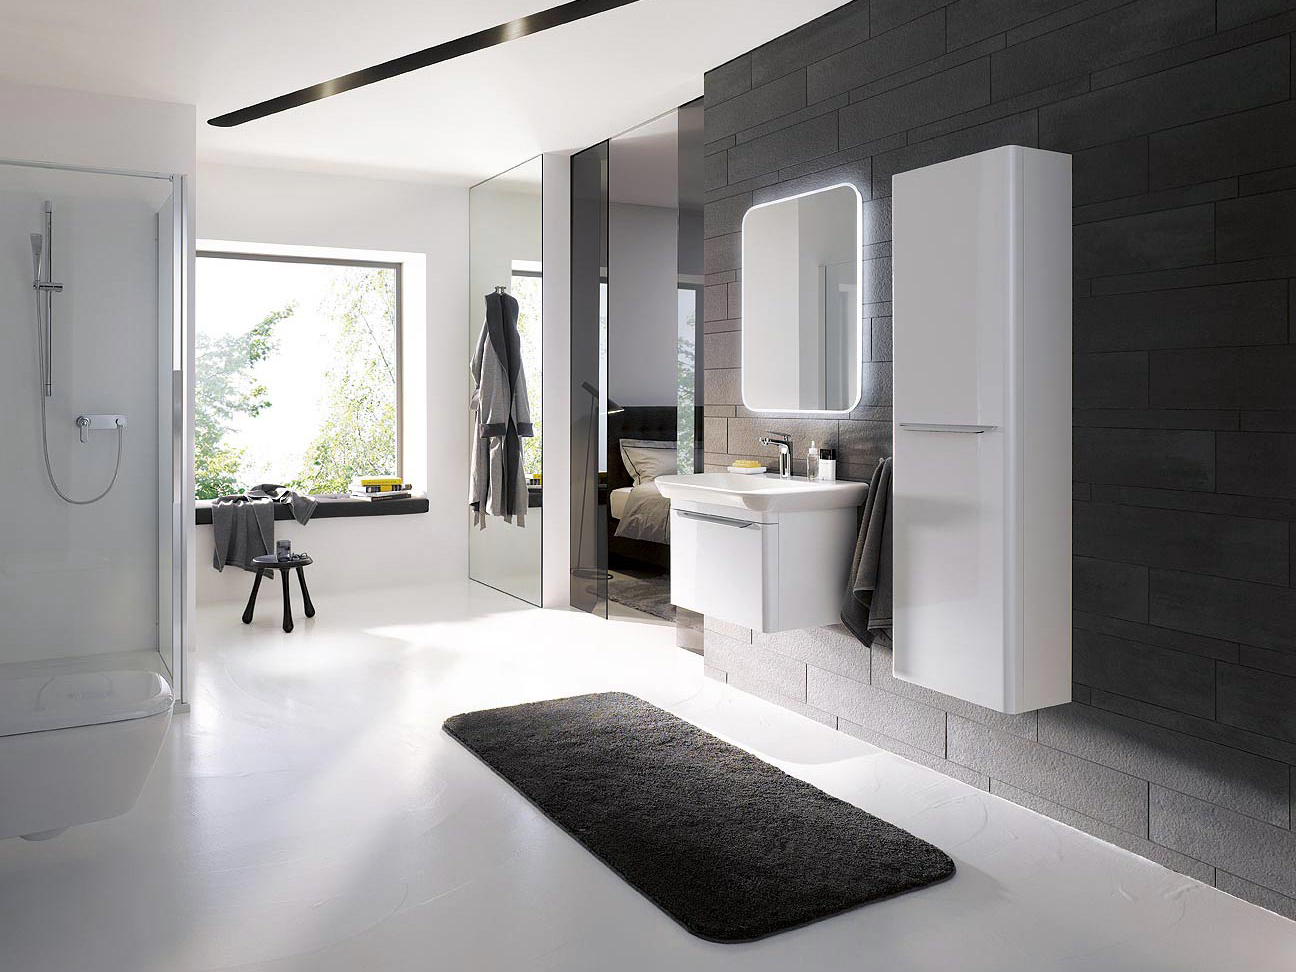 meuble de salle de bain sobre et design myday de allia meuble et d coration marseille. Black Bedroom Furniture Sets. Home Design Ideas